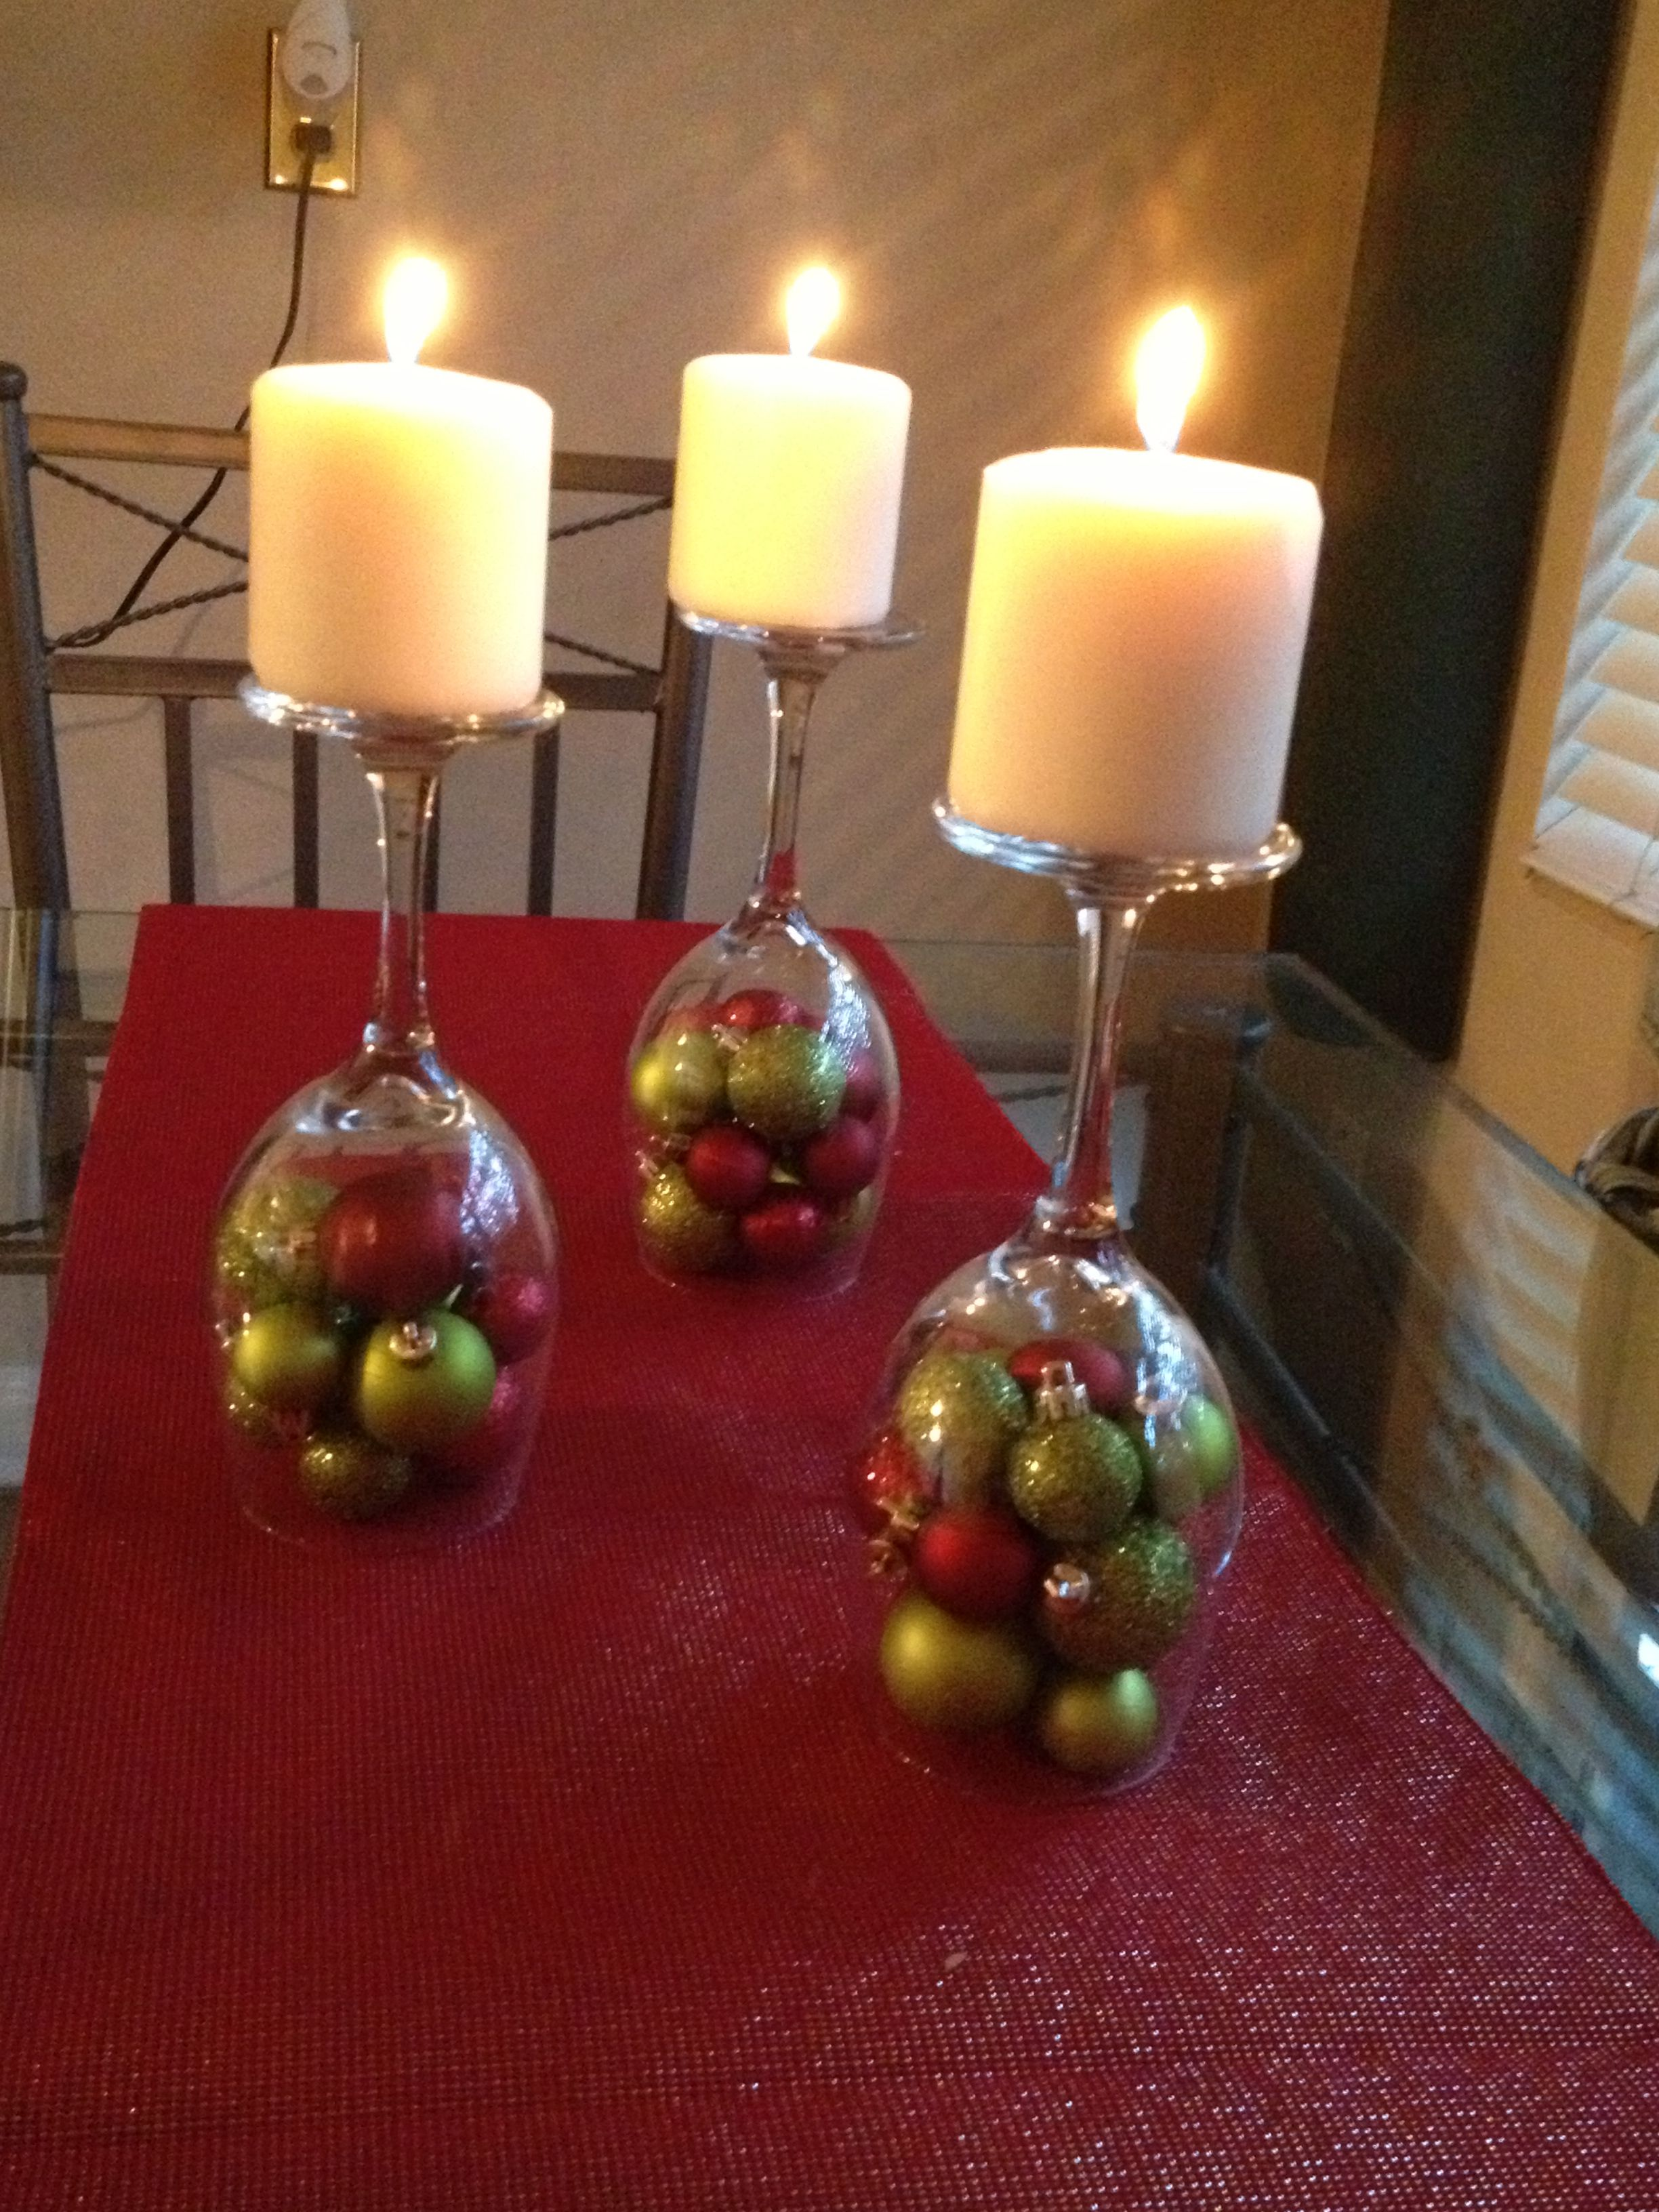 A Different Use For Wine Glasses Christmas Table Decoration Indoor Christmas Minimalist Christmas Decor Minimalist Christmas